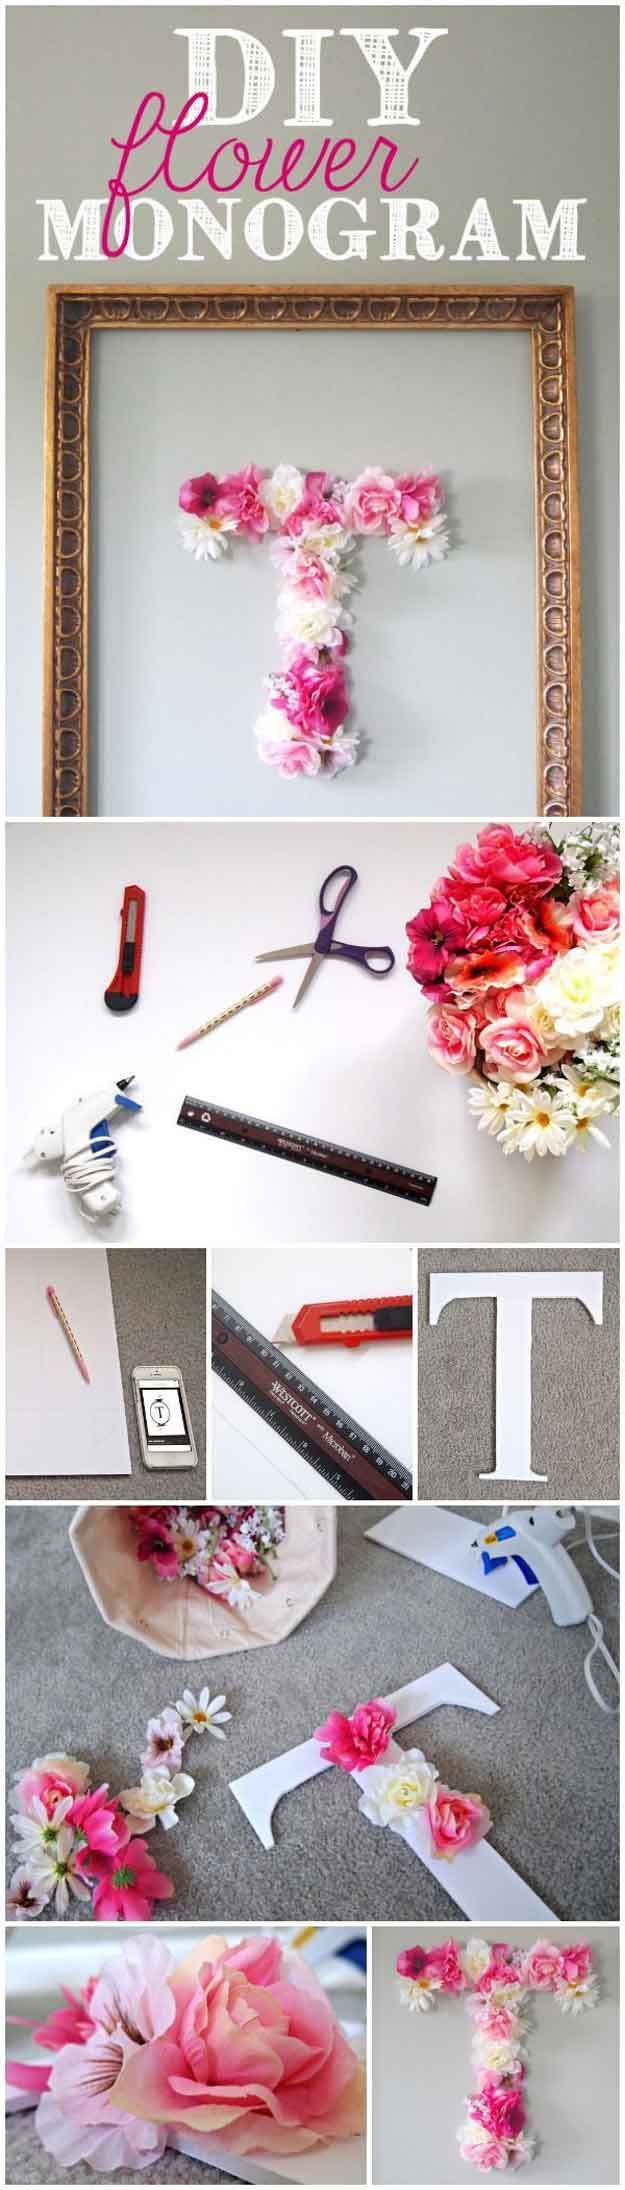 Best 25+ Diy bedroom decor ideas on Pinterest | Diy bedroom, Bedroom  storage hacks and Storage